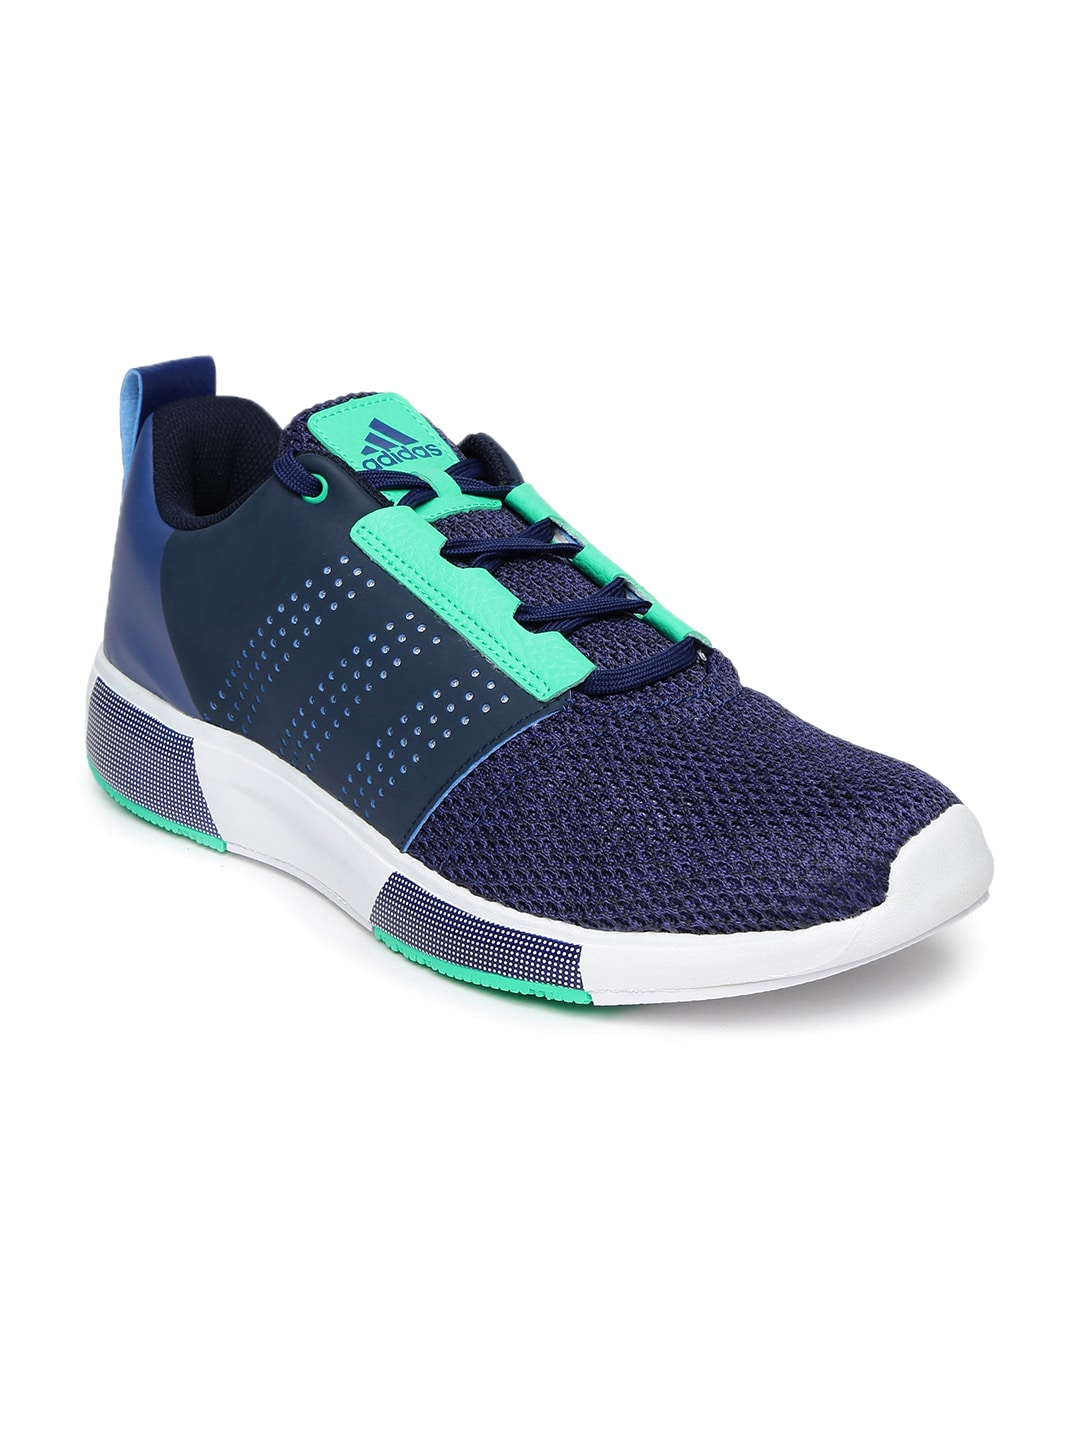 Adidas aq6524 Men Navy Madoru 2 Running Shoes - Best Price in ... a3158568d